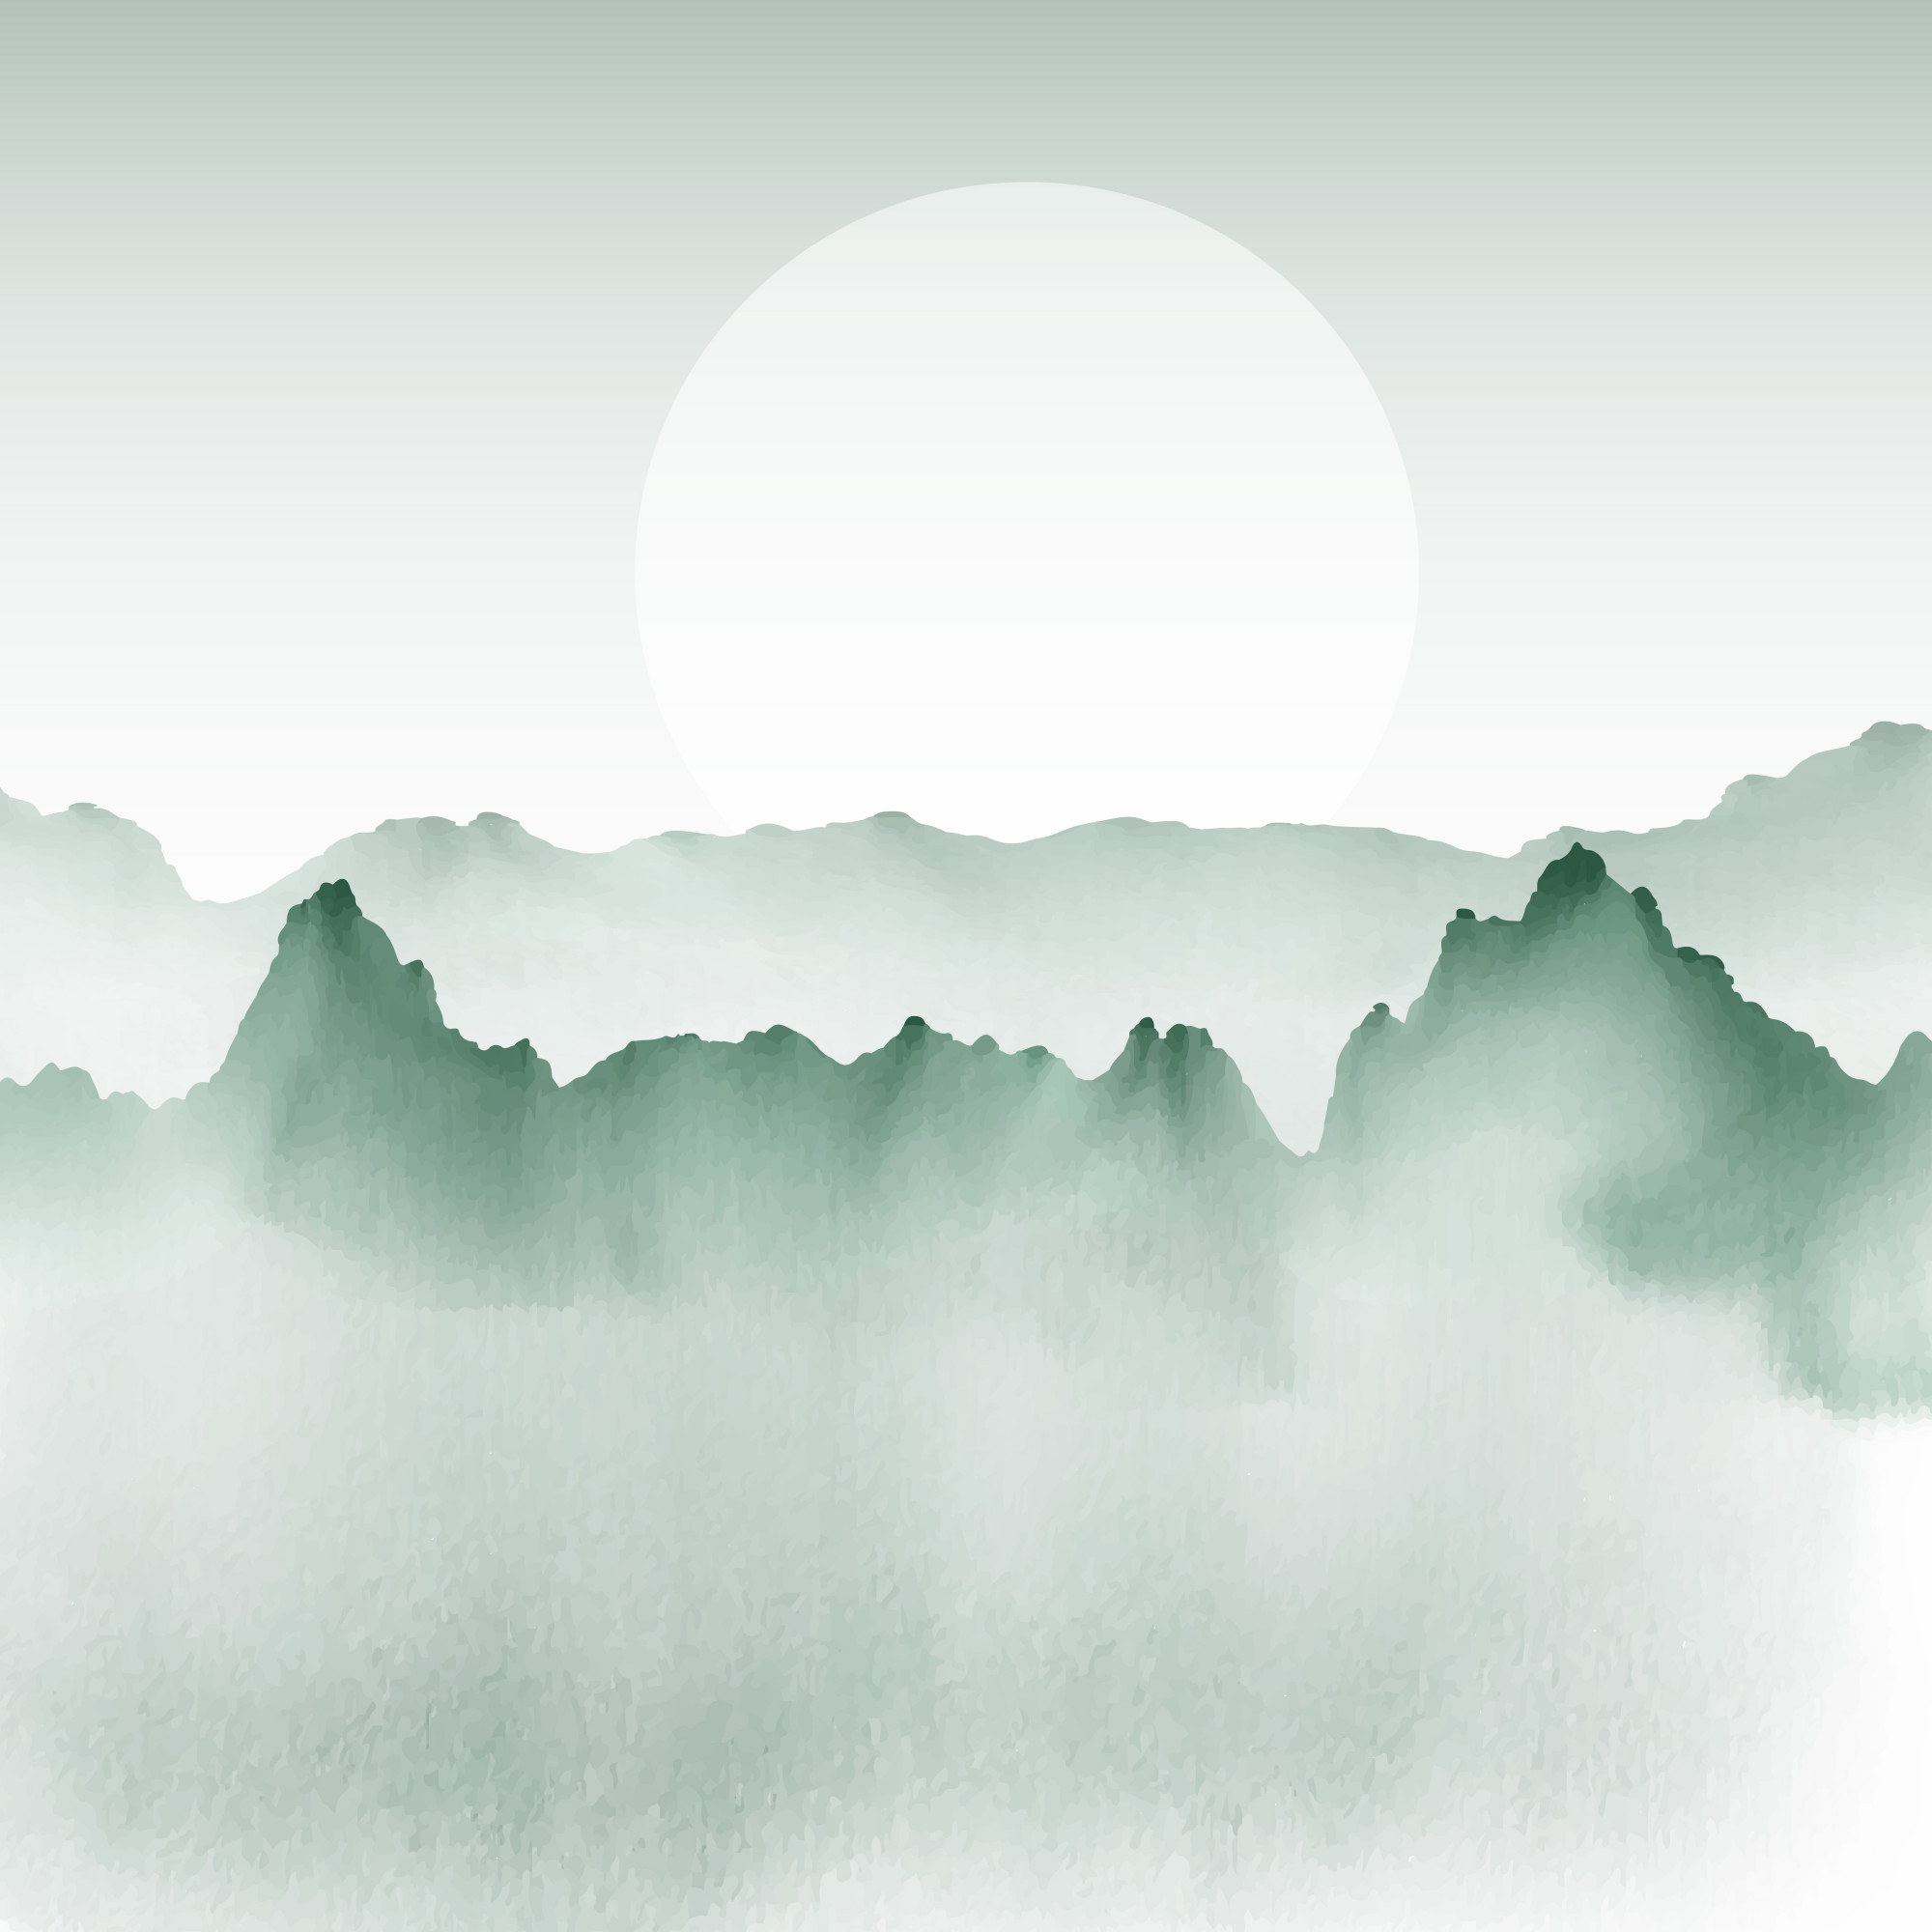 Hand painted background of a mountain landscape